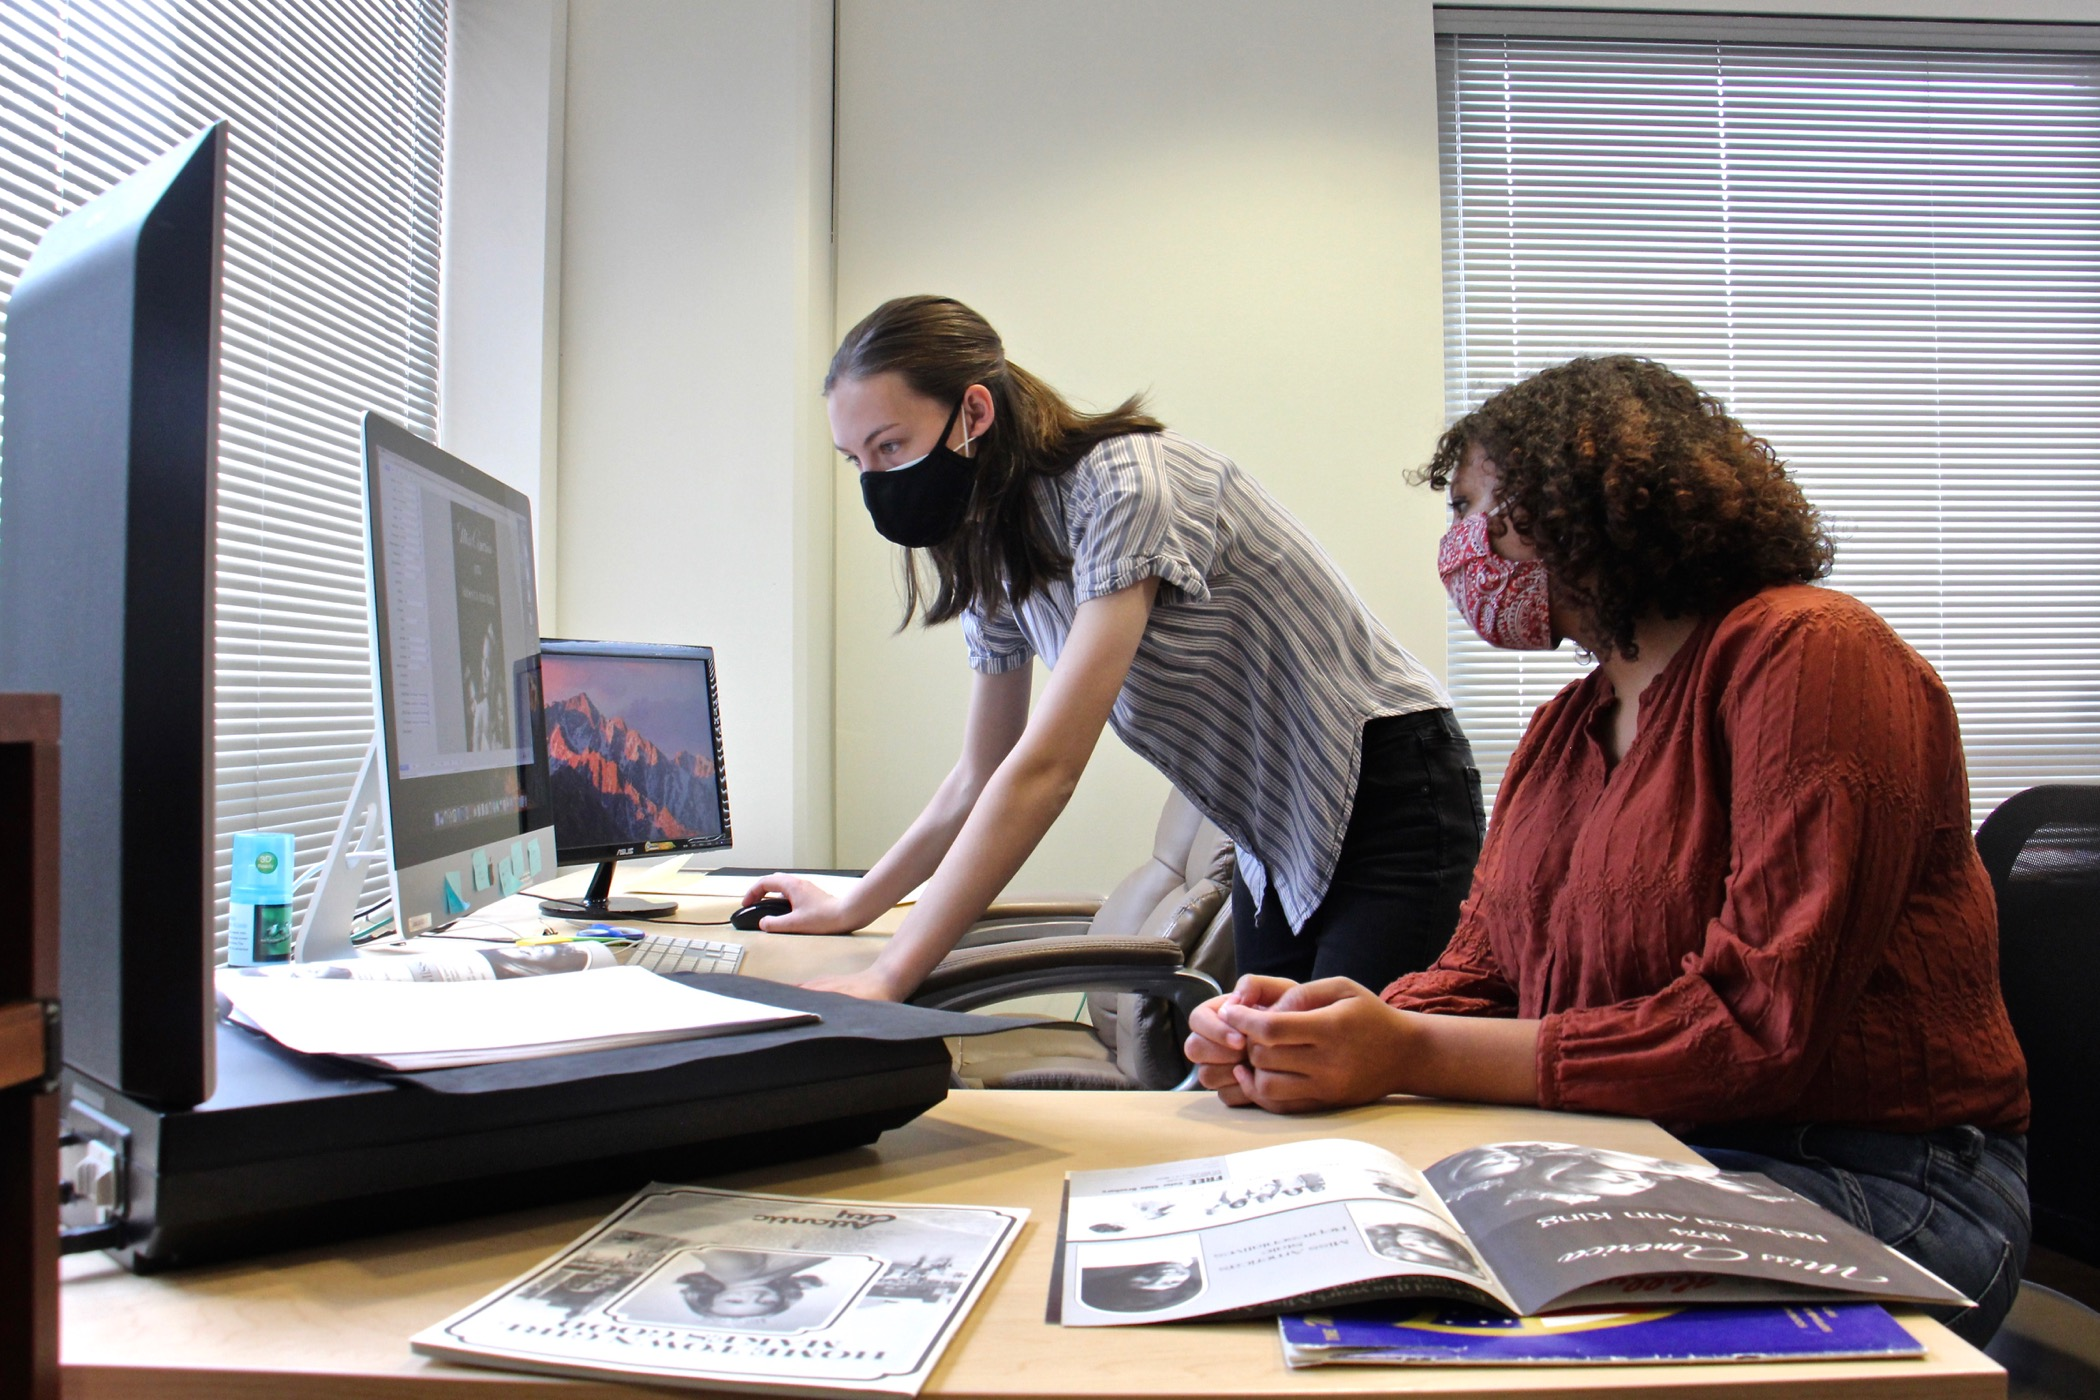 Destiny Hall (right) and Grace Fox work on digitizing program books from the Miss America Organization archives.